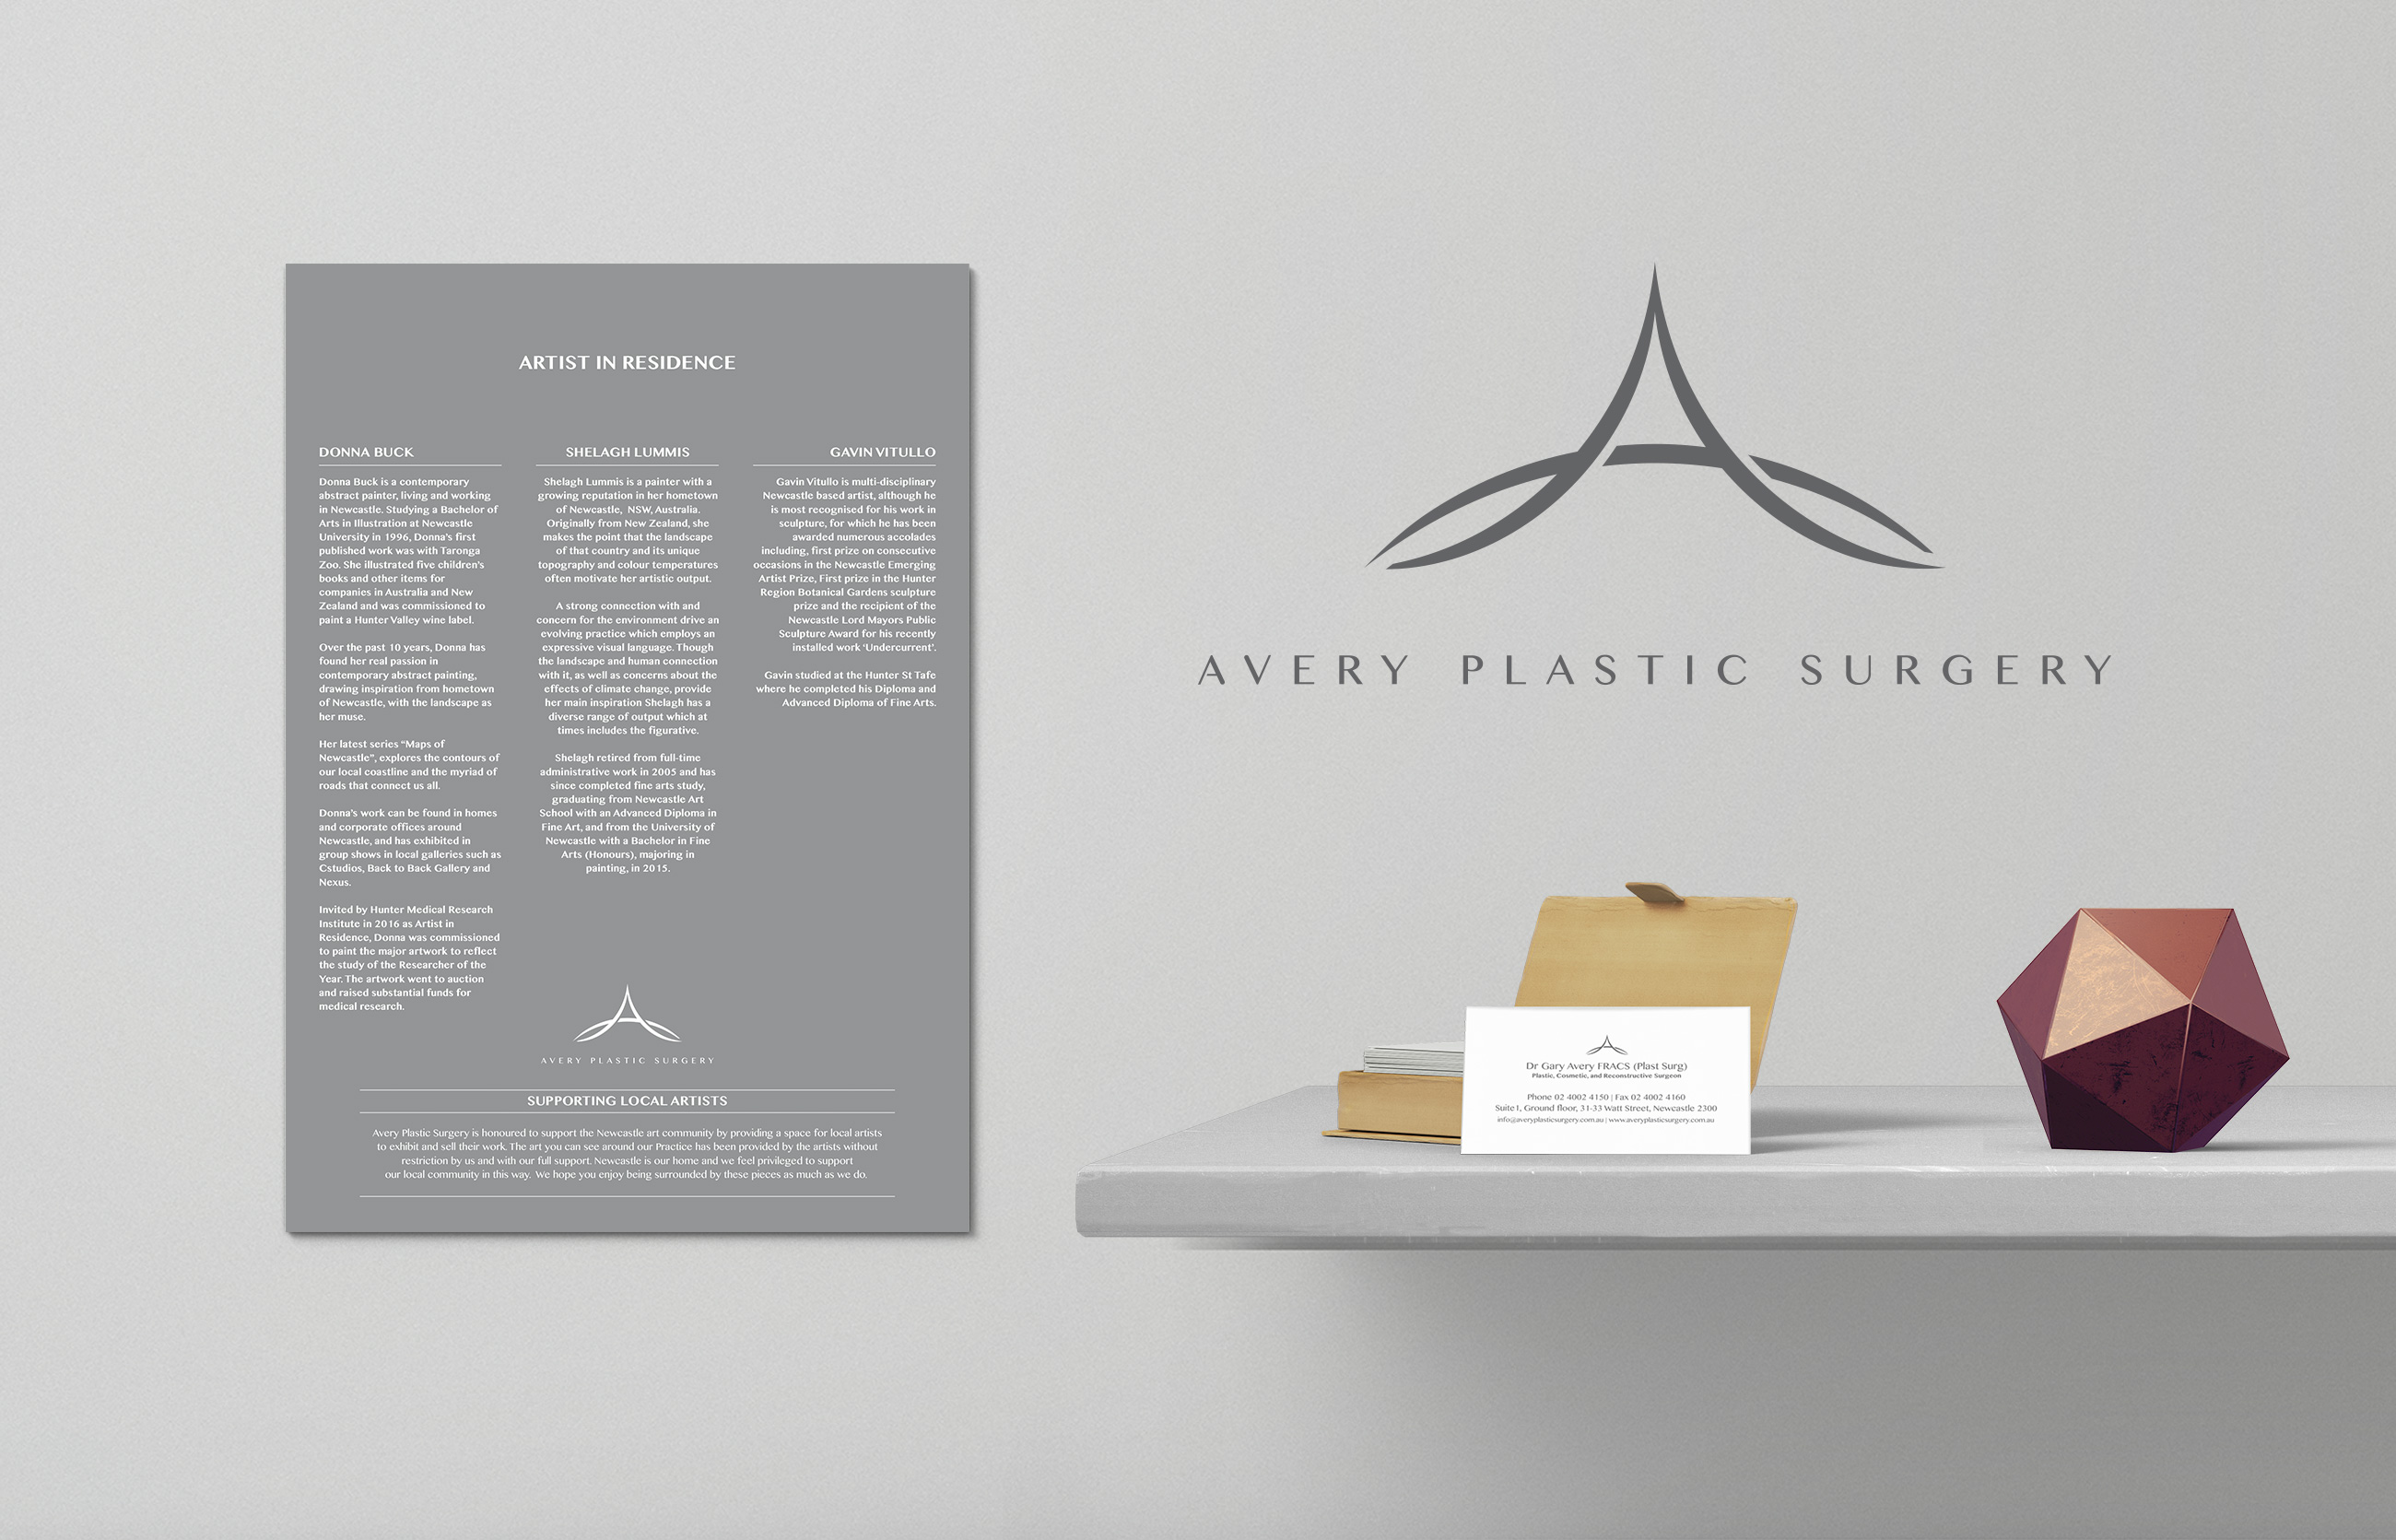 Avery Plastic Surgery Signage